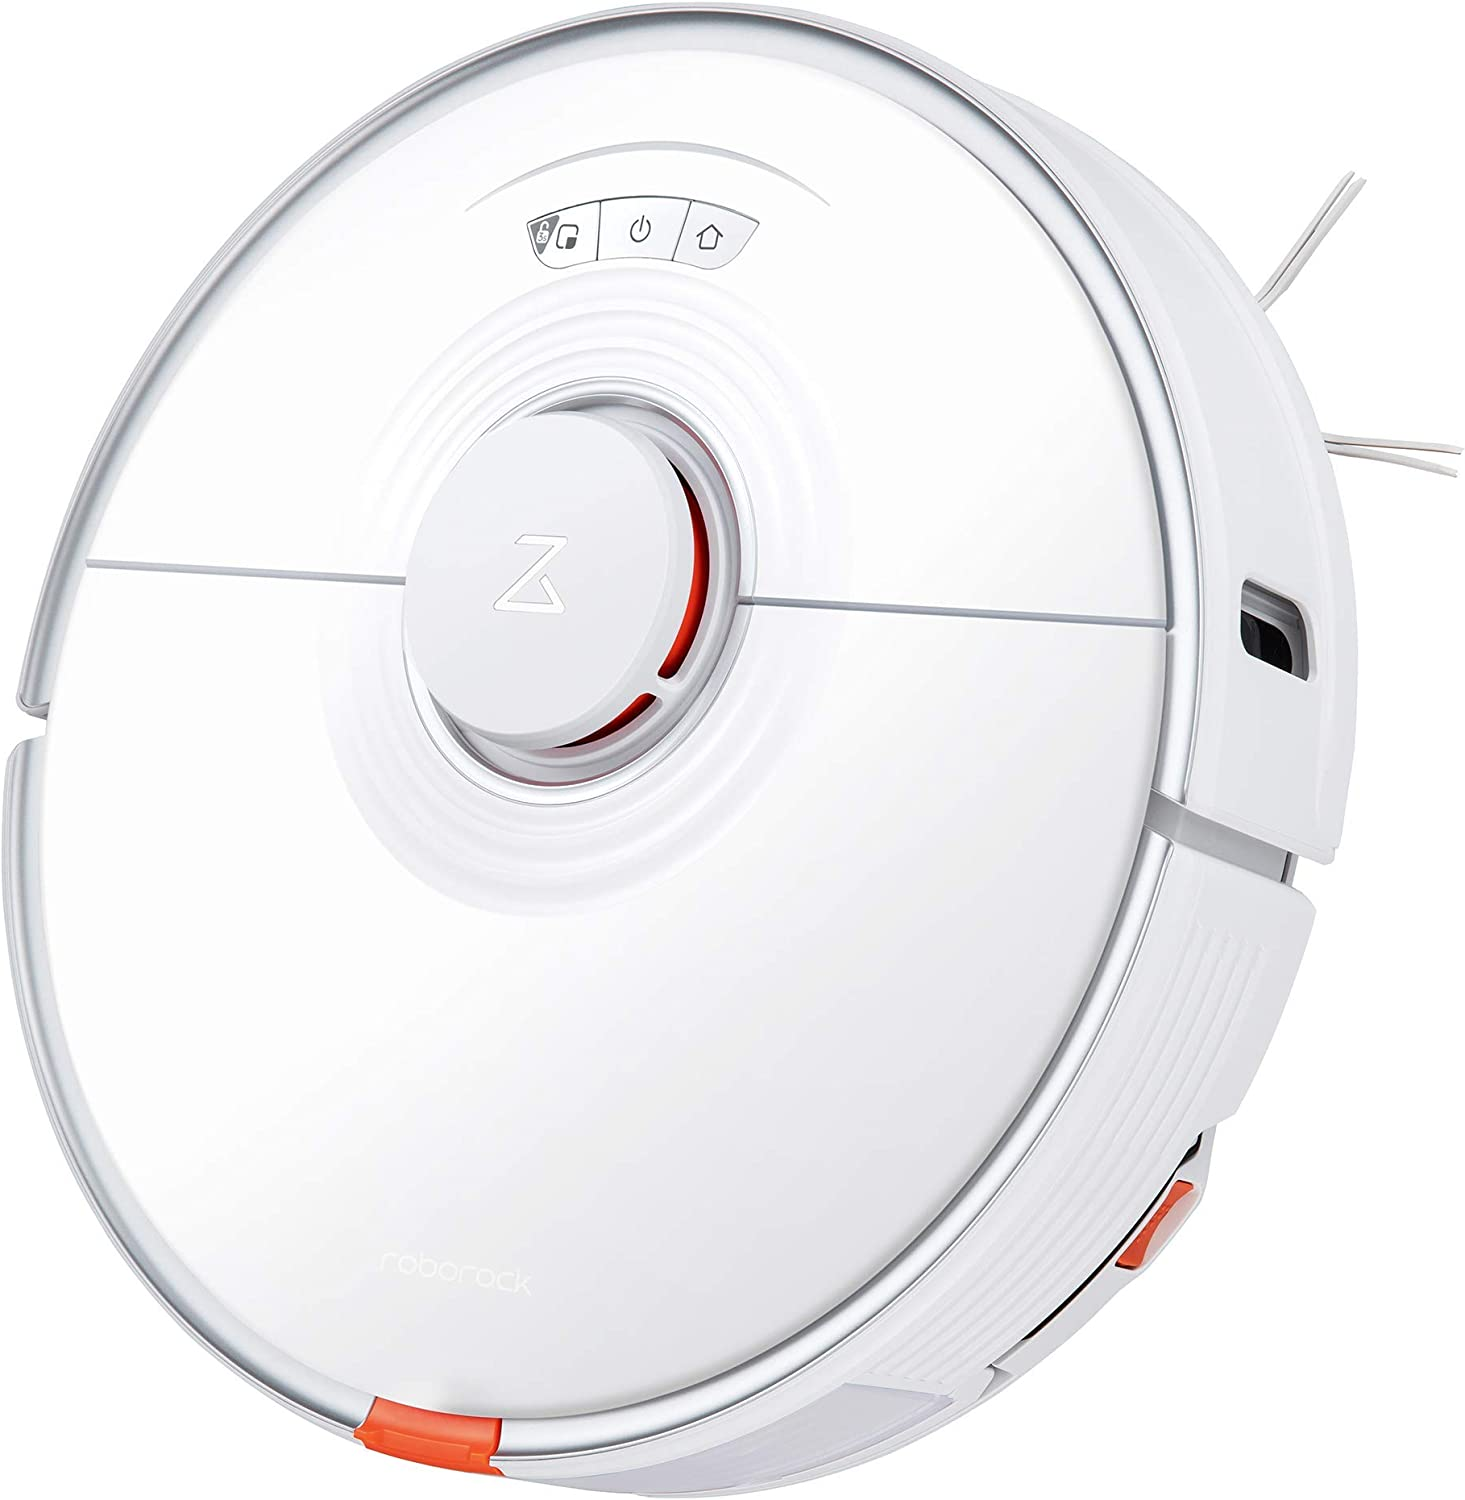 Roborock S7 Regular discount Robot Vacuum and Mop Our shop OFFers the best service Mopping Aut Cleaner Sonic with